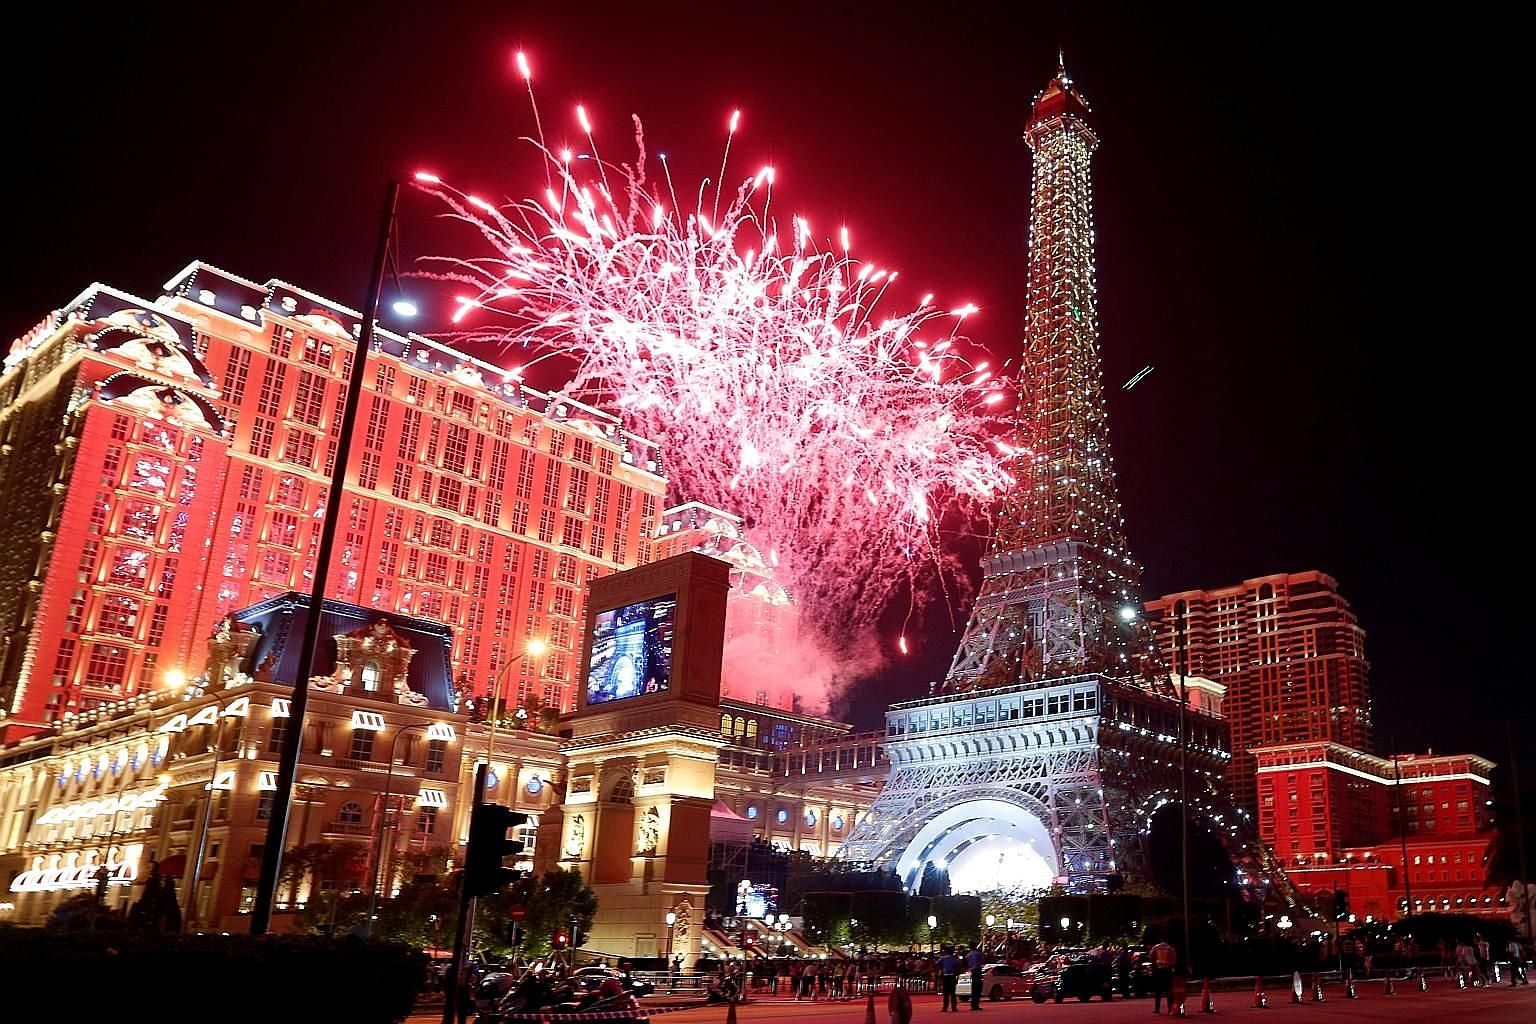 Fireworks dazzled at the Parisian, Las Vegas Sands' newest property in Macau, which debted in September 2016. The group saw overall casino revenue in Macau grow 22 per cent in the first quarter.